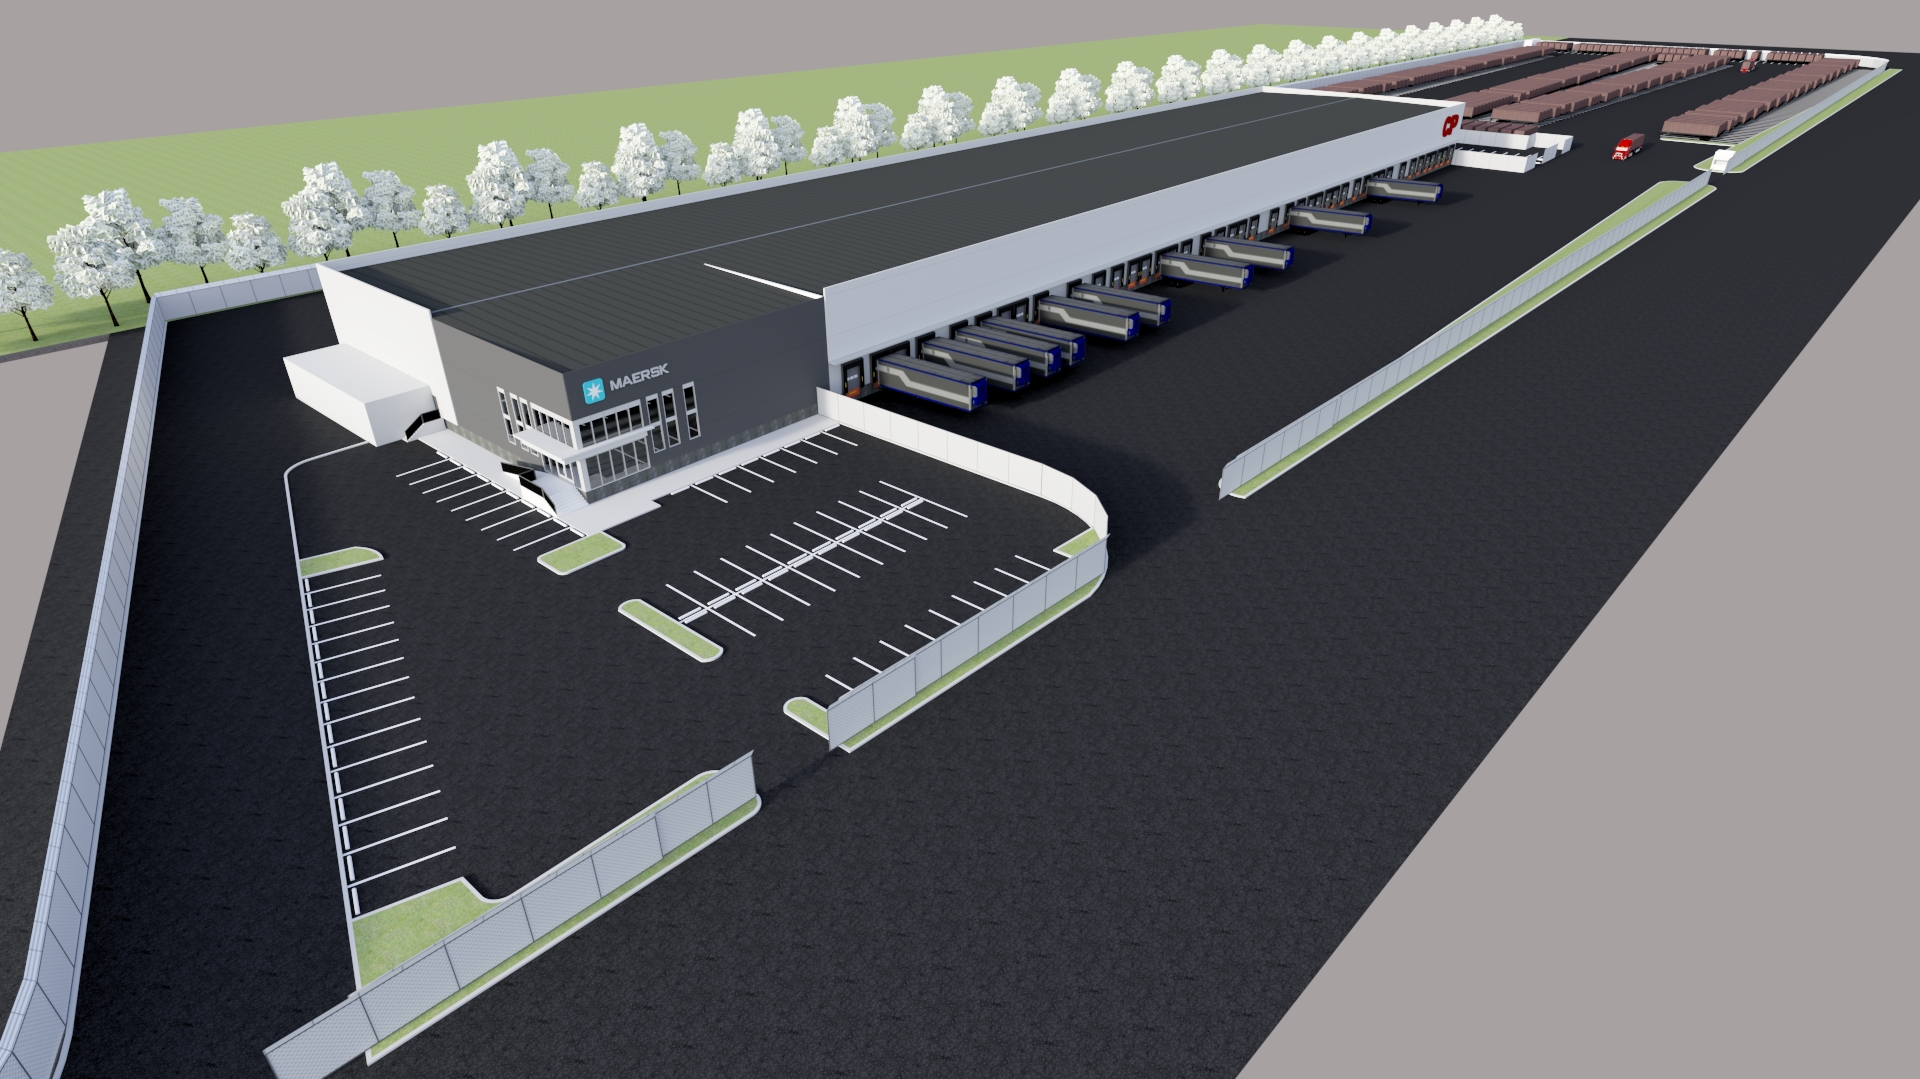 Canadian Pacific Railway and Maersk to develop transload and distribution facility in Vancouver